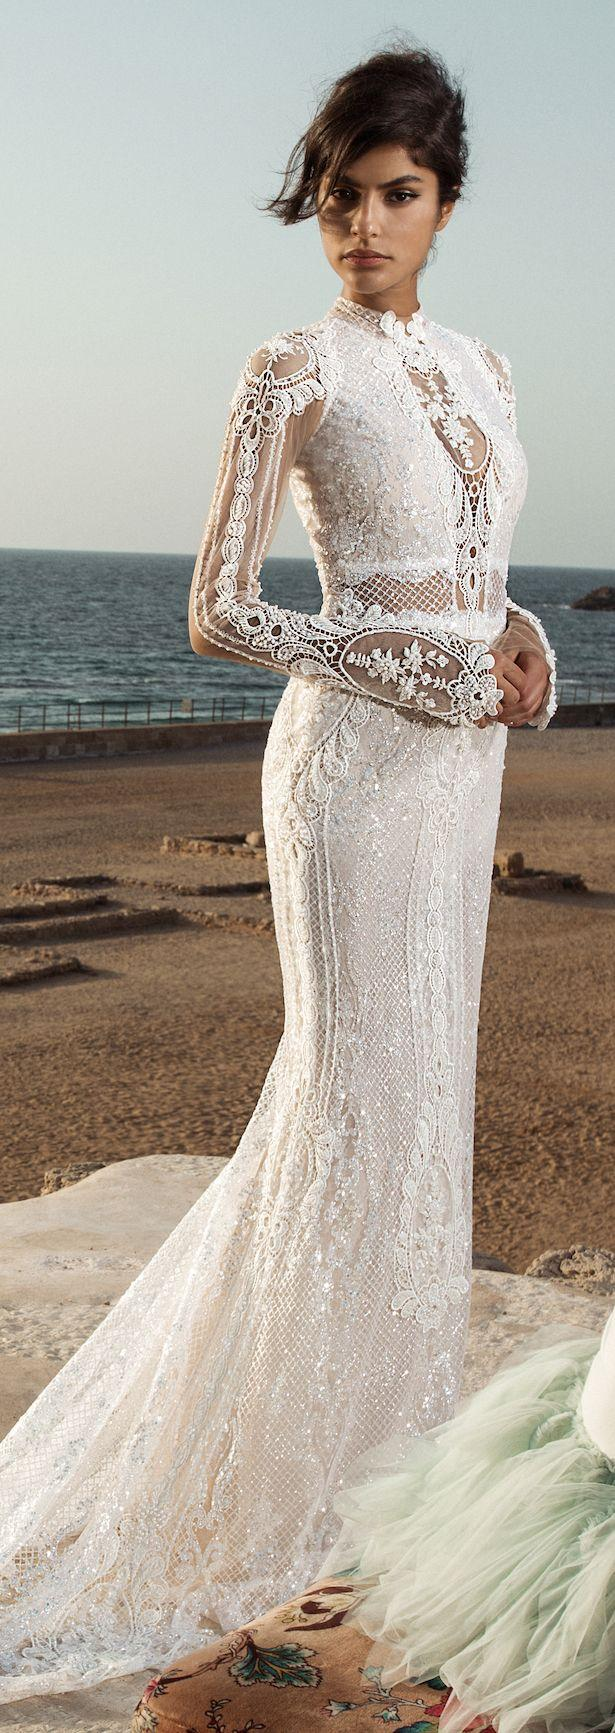 Wedding - GALA By Galia Lahav Collection NO. III Wedding Dresses